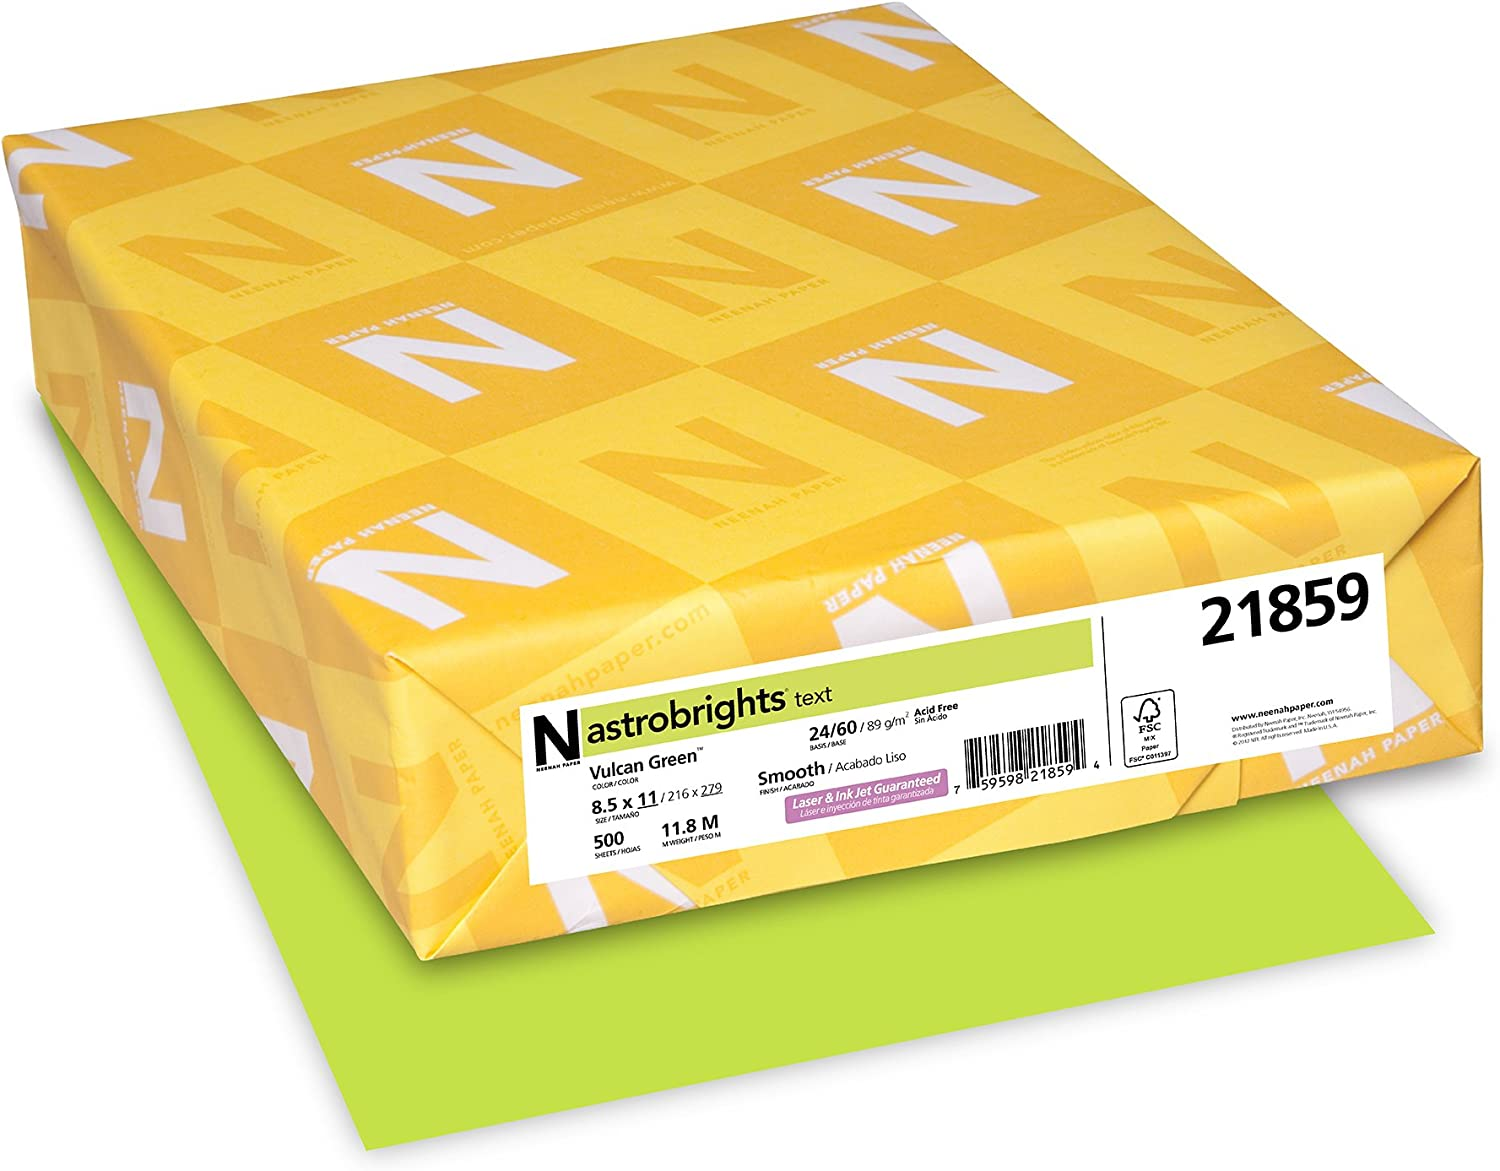 """Neenah 21859 Astrobrights Color Paper, 8.5"""" x 11"""", 24 lb / 89 GSM, Vulcan Green, 500 Sheets : Printer And Copier Paper : Office Products"""